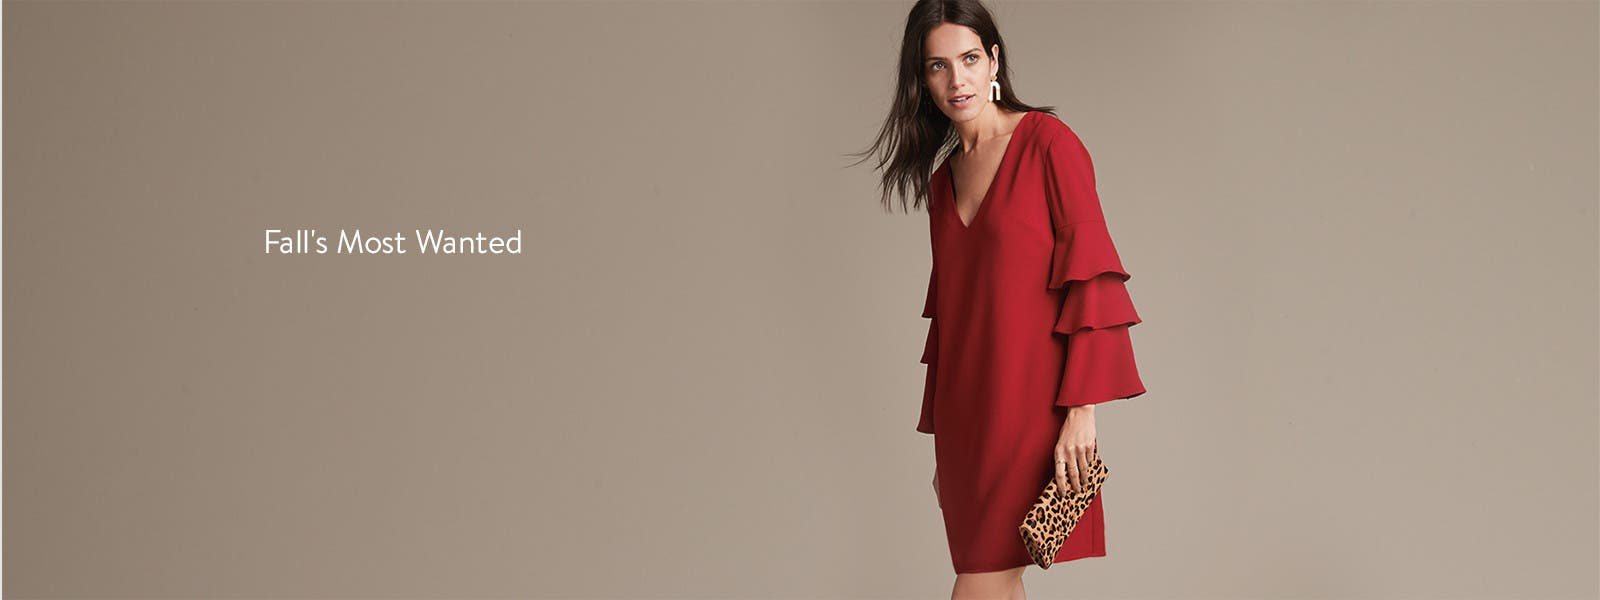 Fall's most-wanted dresses.